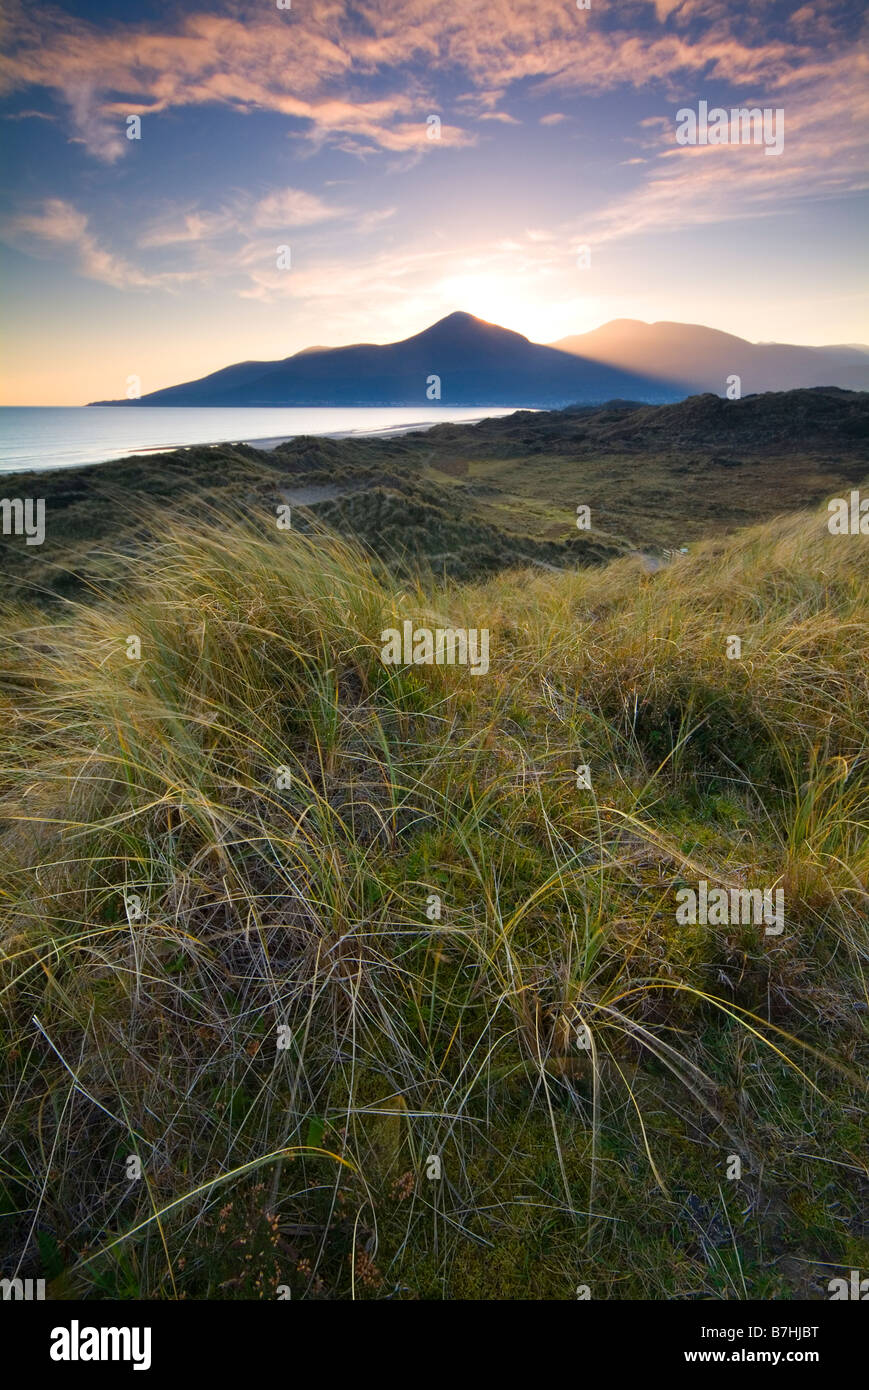 Irish Landscape image of dunes, beach and coast at Murlough Beach, Dundrum Bay, Newcastle, County Down, Northern - Stock Image